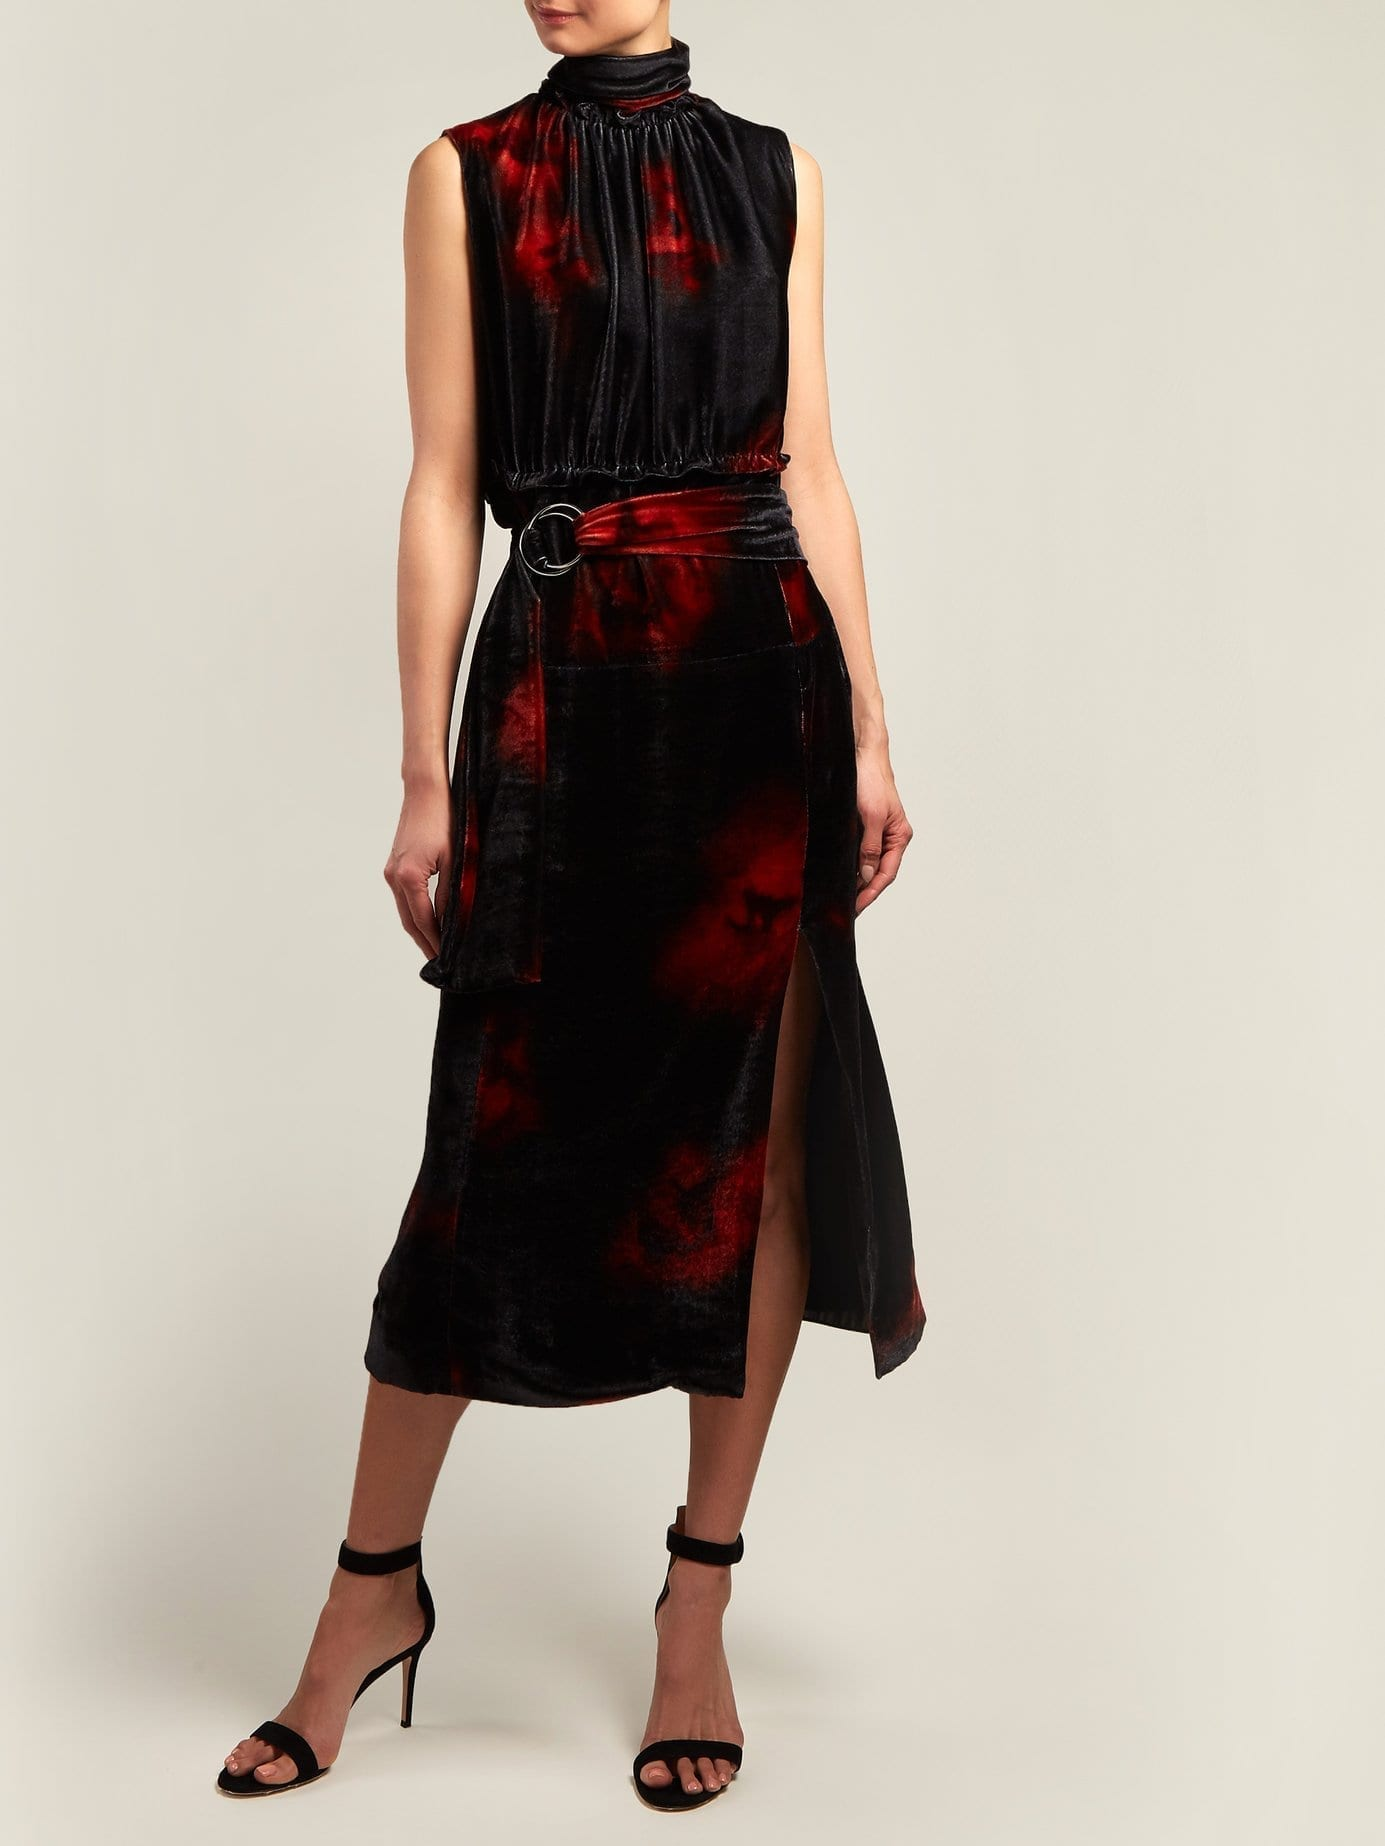 ALTUZARRA Indira Velvet Black Dress